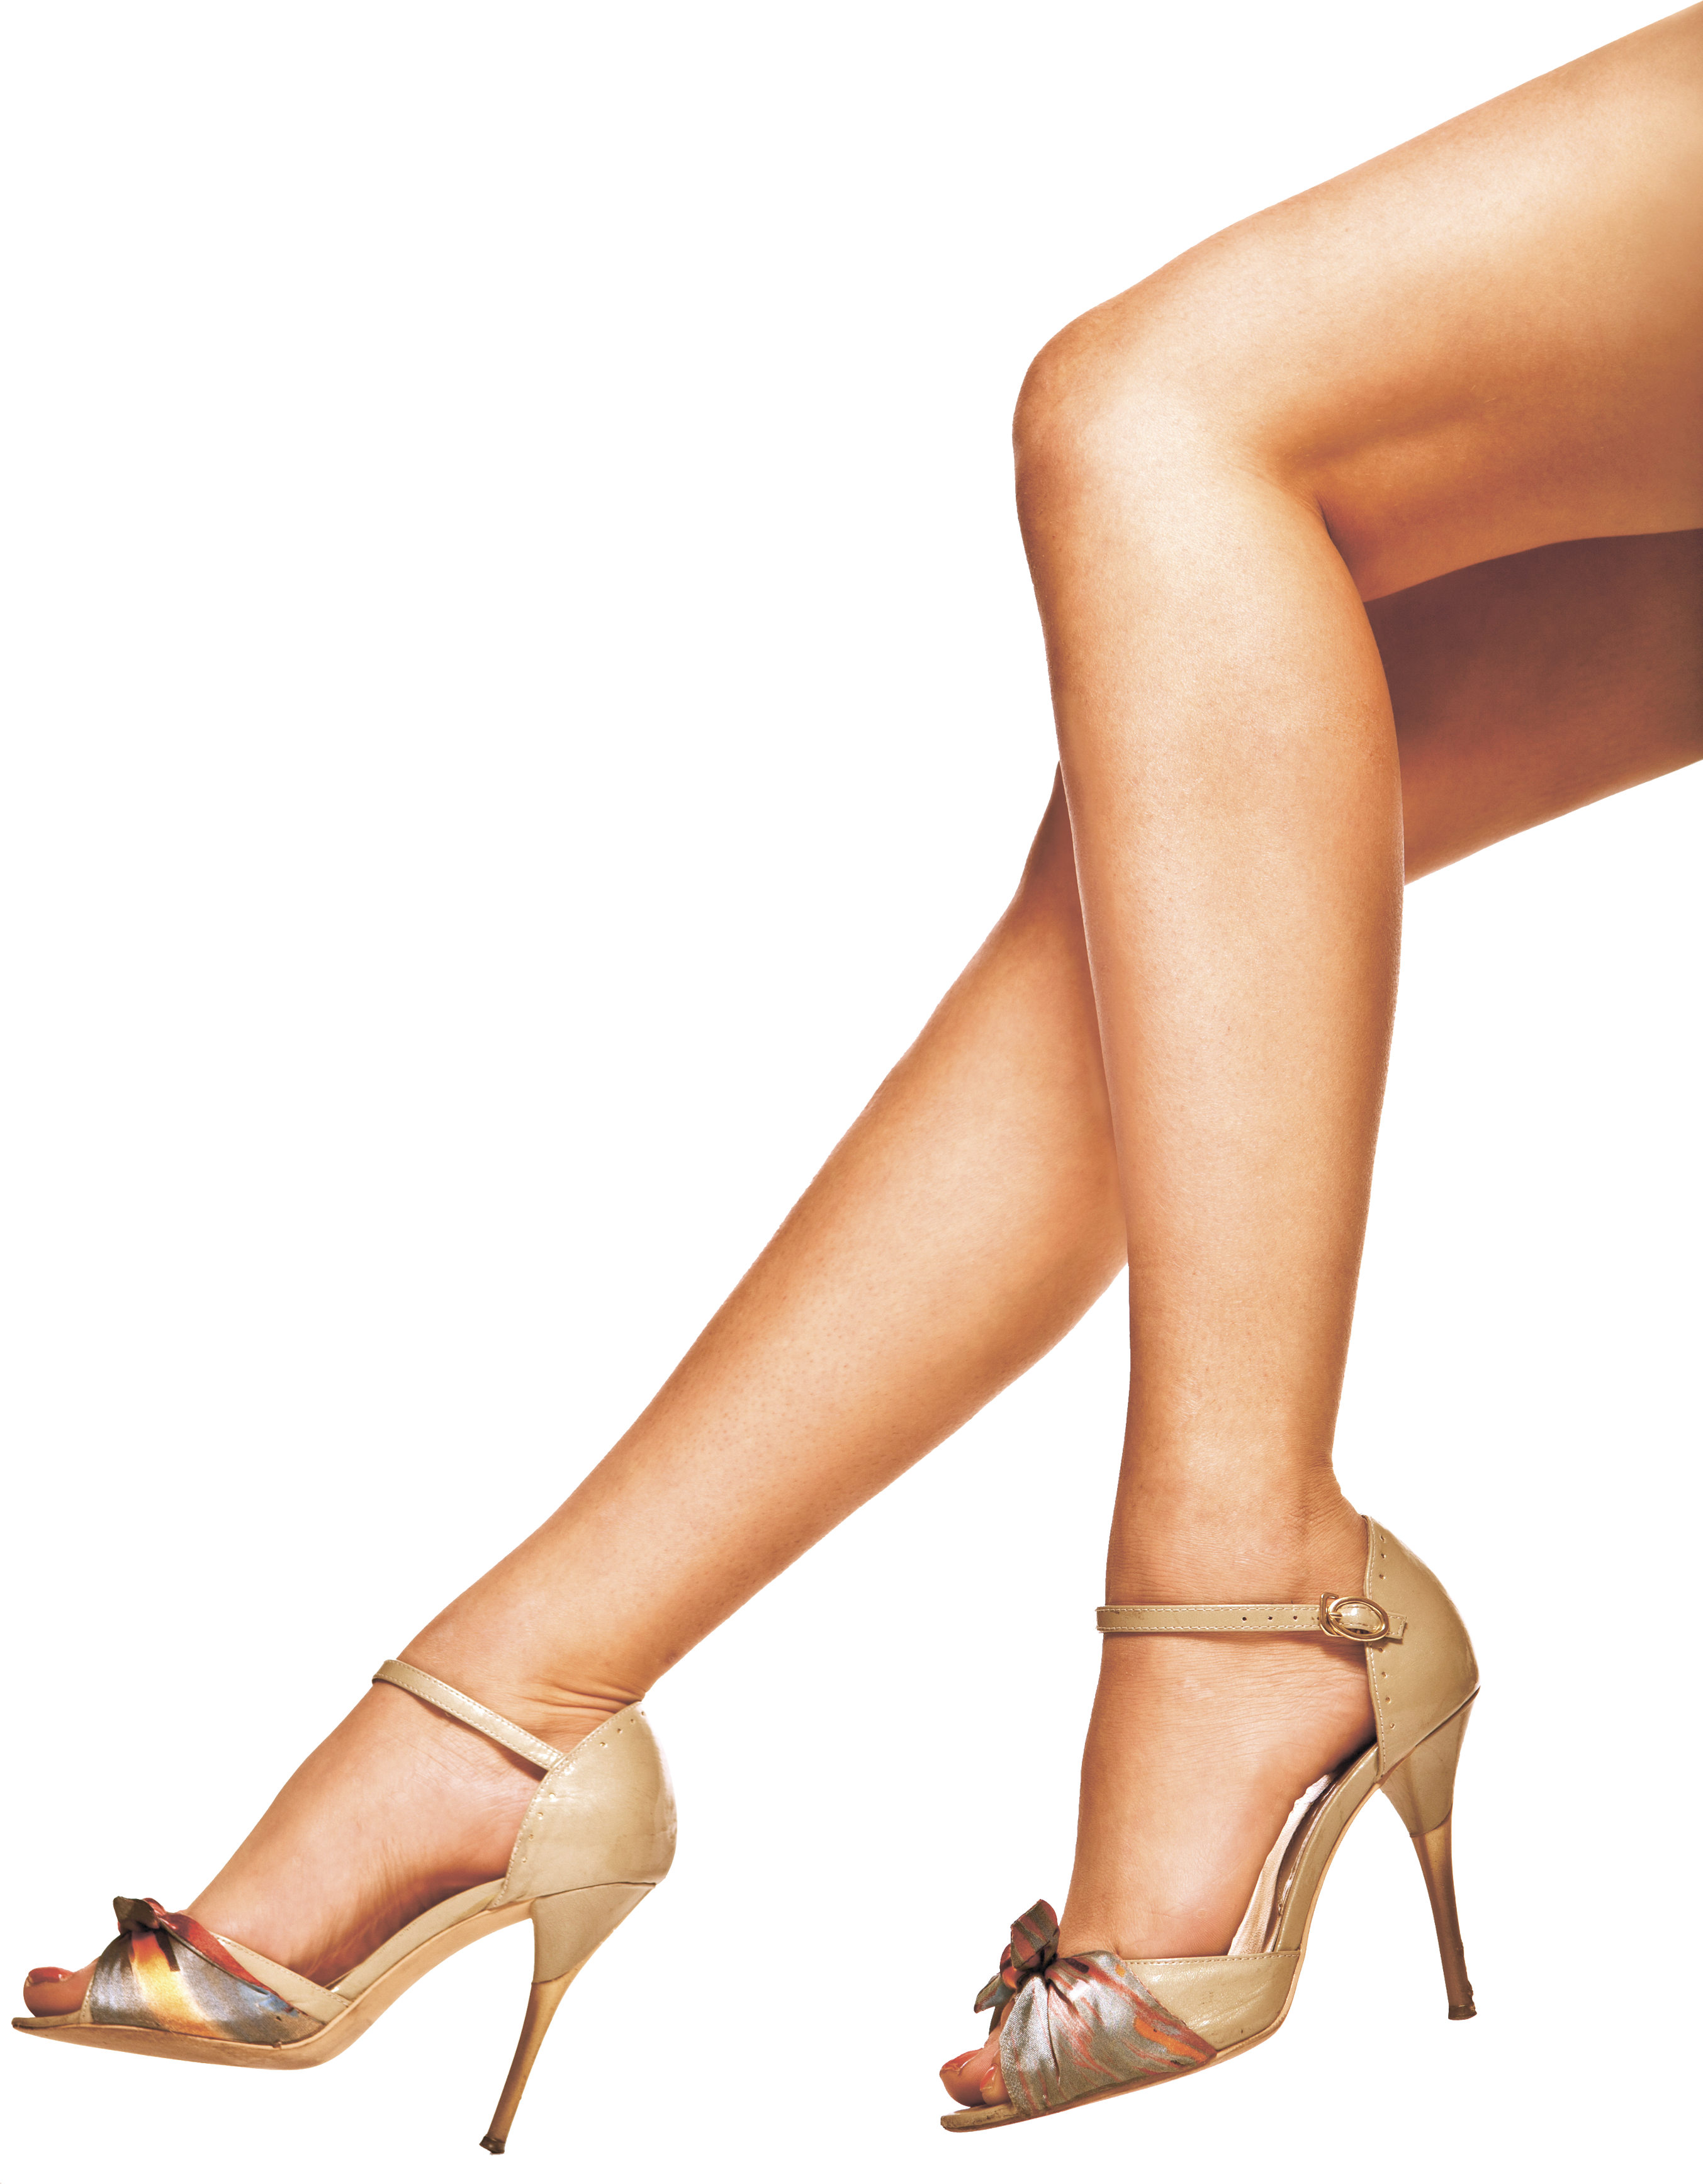 Leg transparent images pluspng. Woman legs png png freeuse download